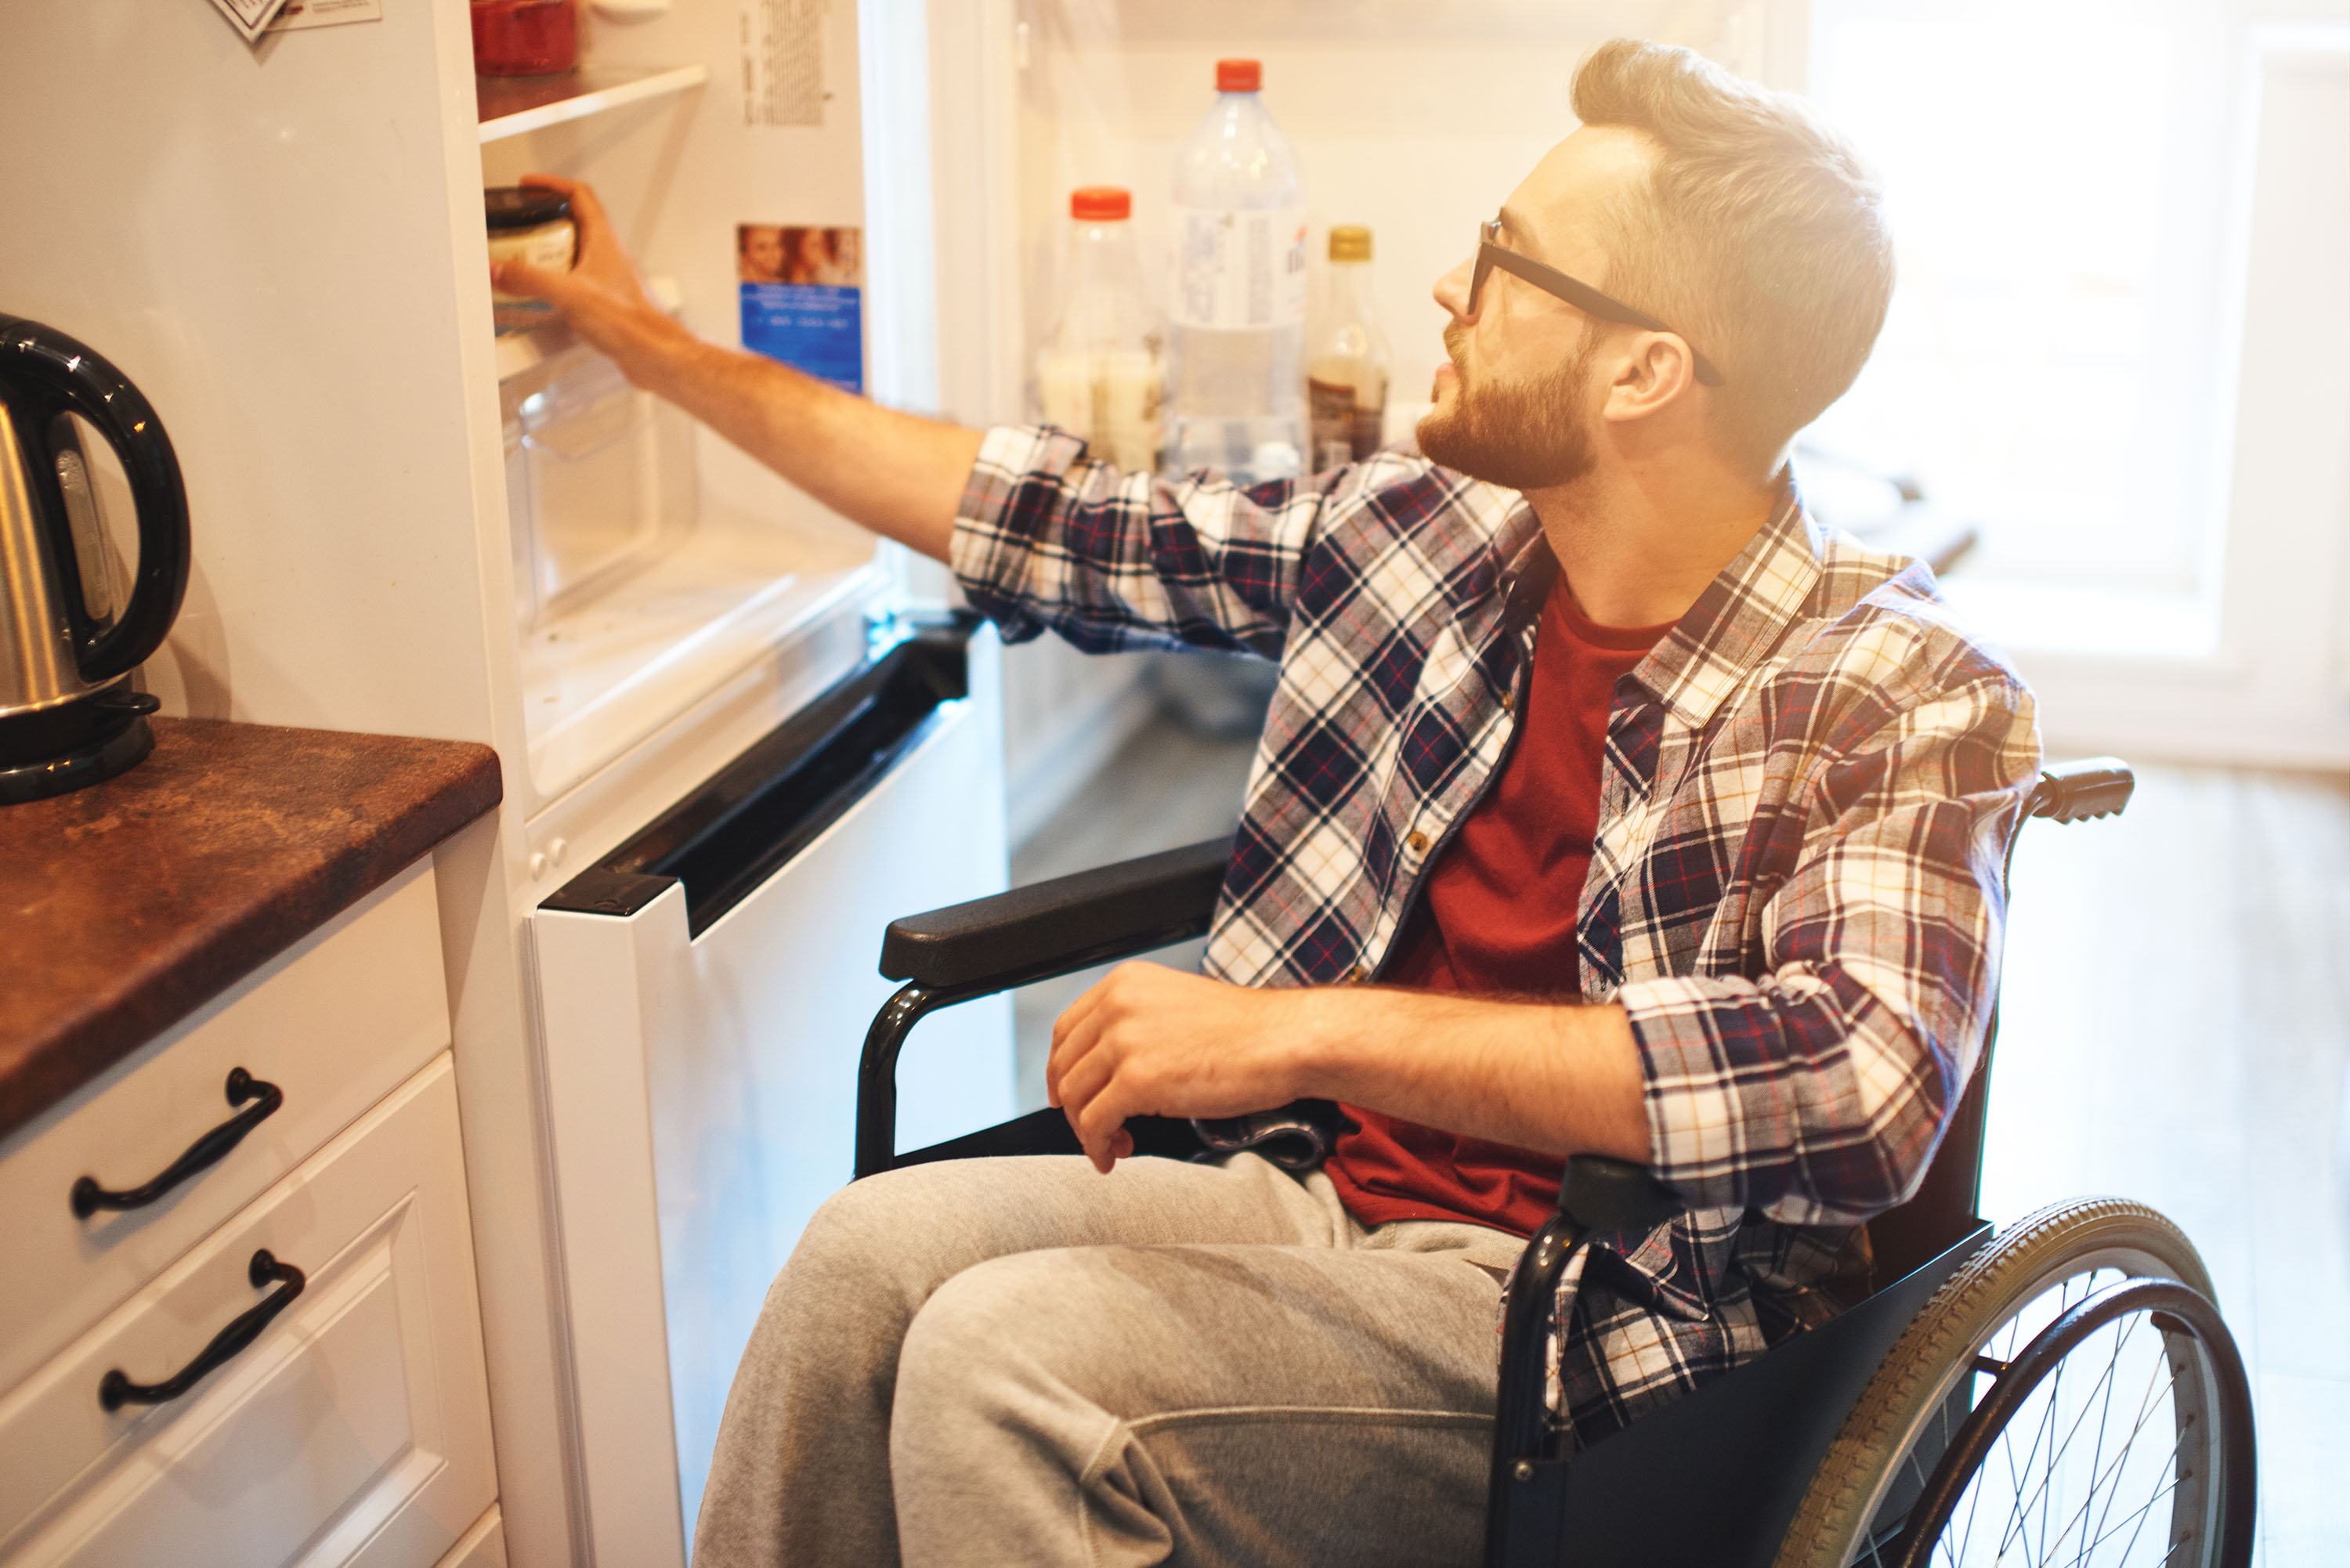 A man in a wheelchair is in his kitchen reaching for something in the cabinet.